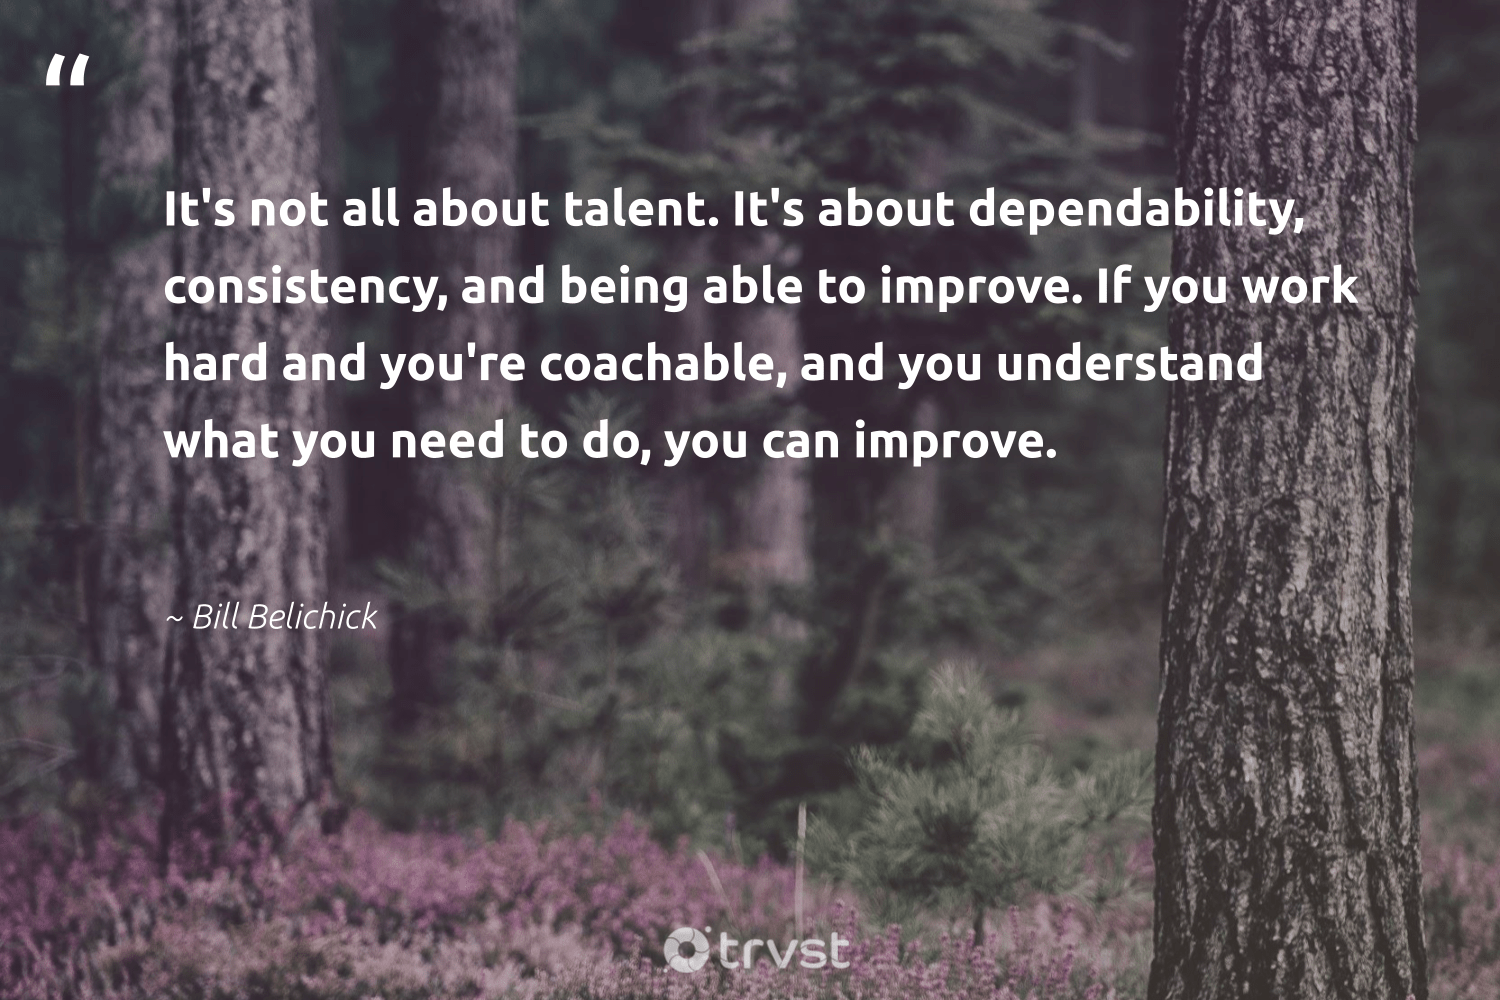 """It's not all about talent. It's about dependability, consistency, and being able to improve. If you work hard and you're coachable, and you understand what you need to do, you can improve.""  - Bill Belichick #trvst #quotes #talent #ethicalbusiness #dogood #weareallone #socialchange #makeadifference #dotherightthing #betterplanet #planetearthfirst #giveback"